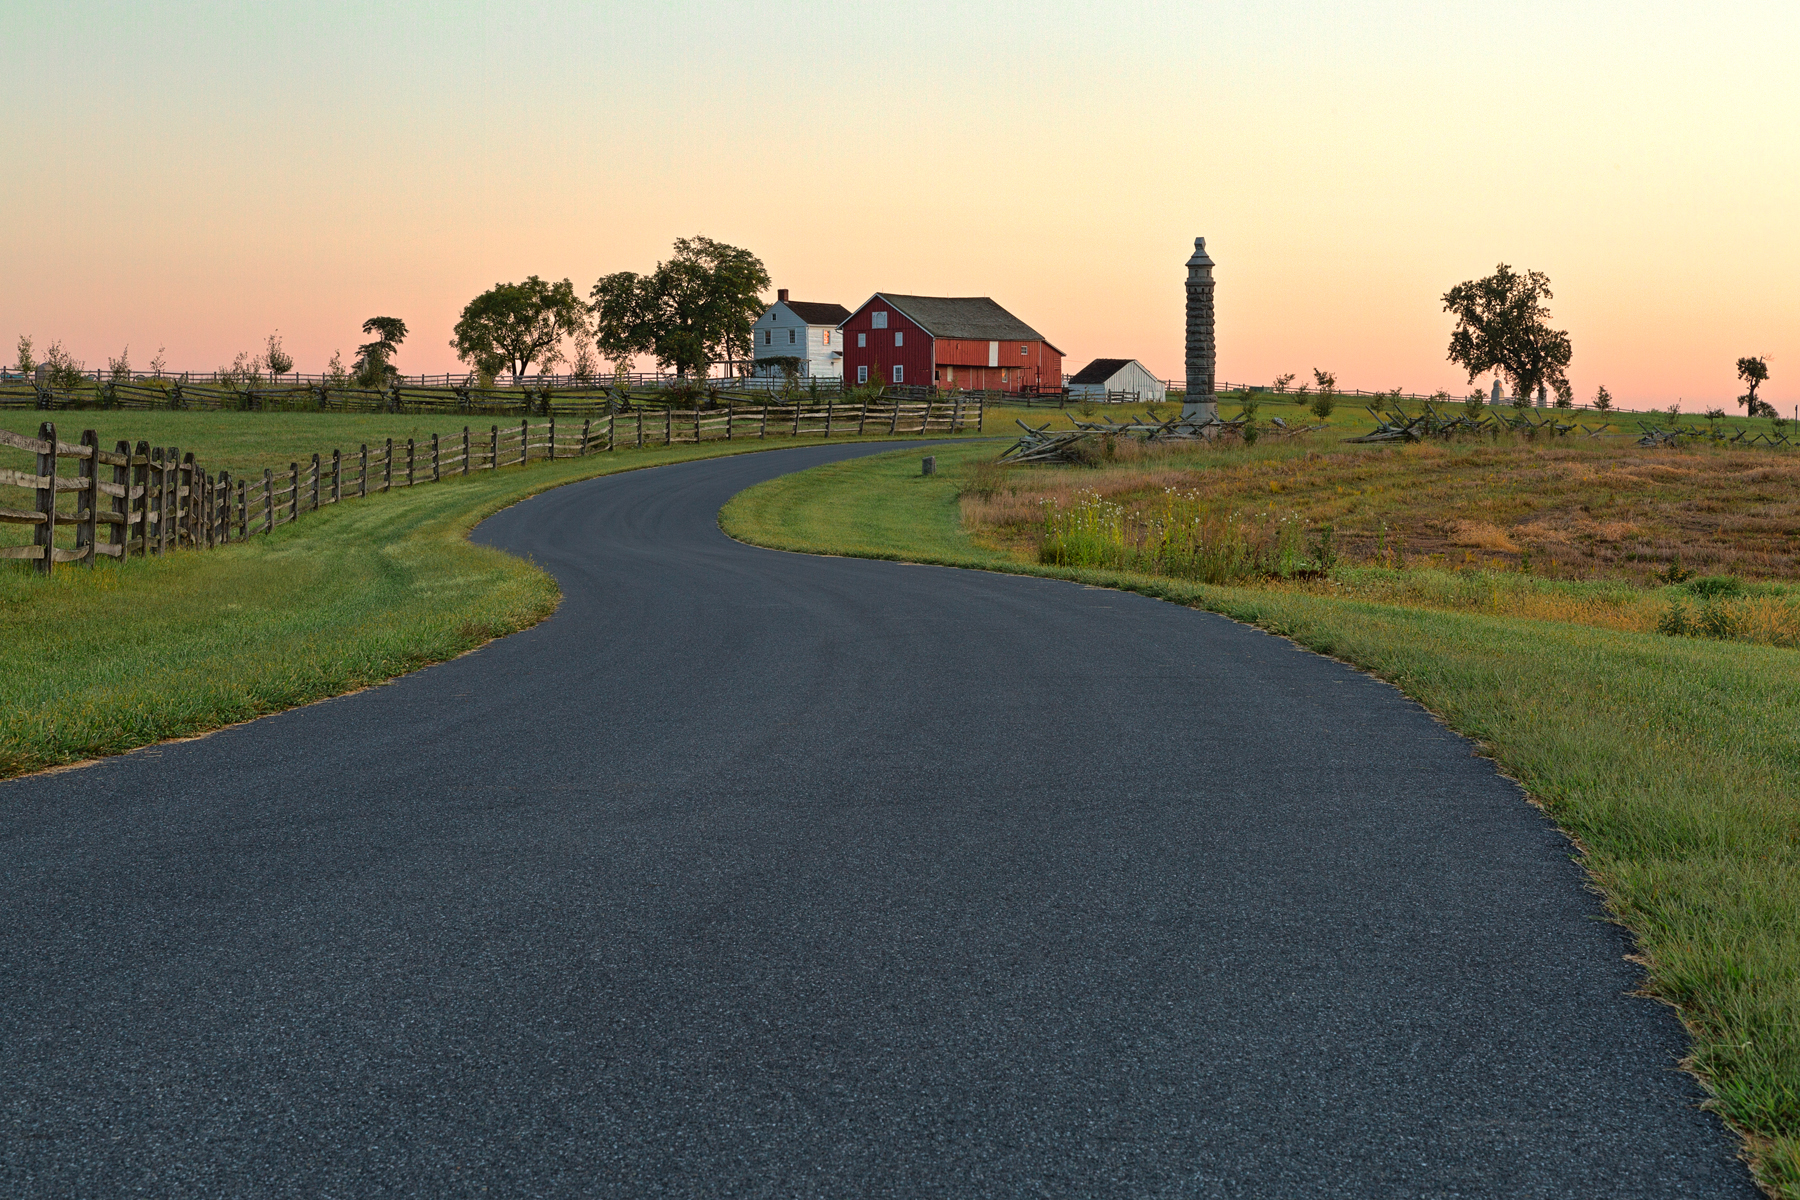 Winding Dawn Road - HDR, America, Outdoors, Red, Range, HQ Photo